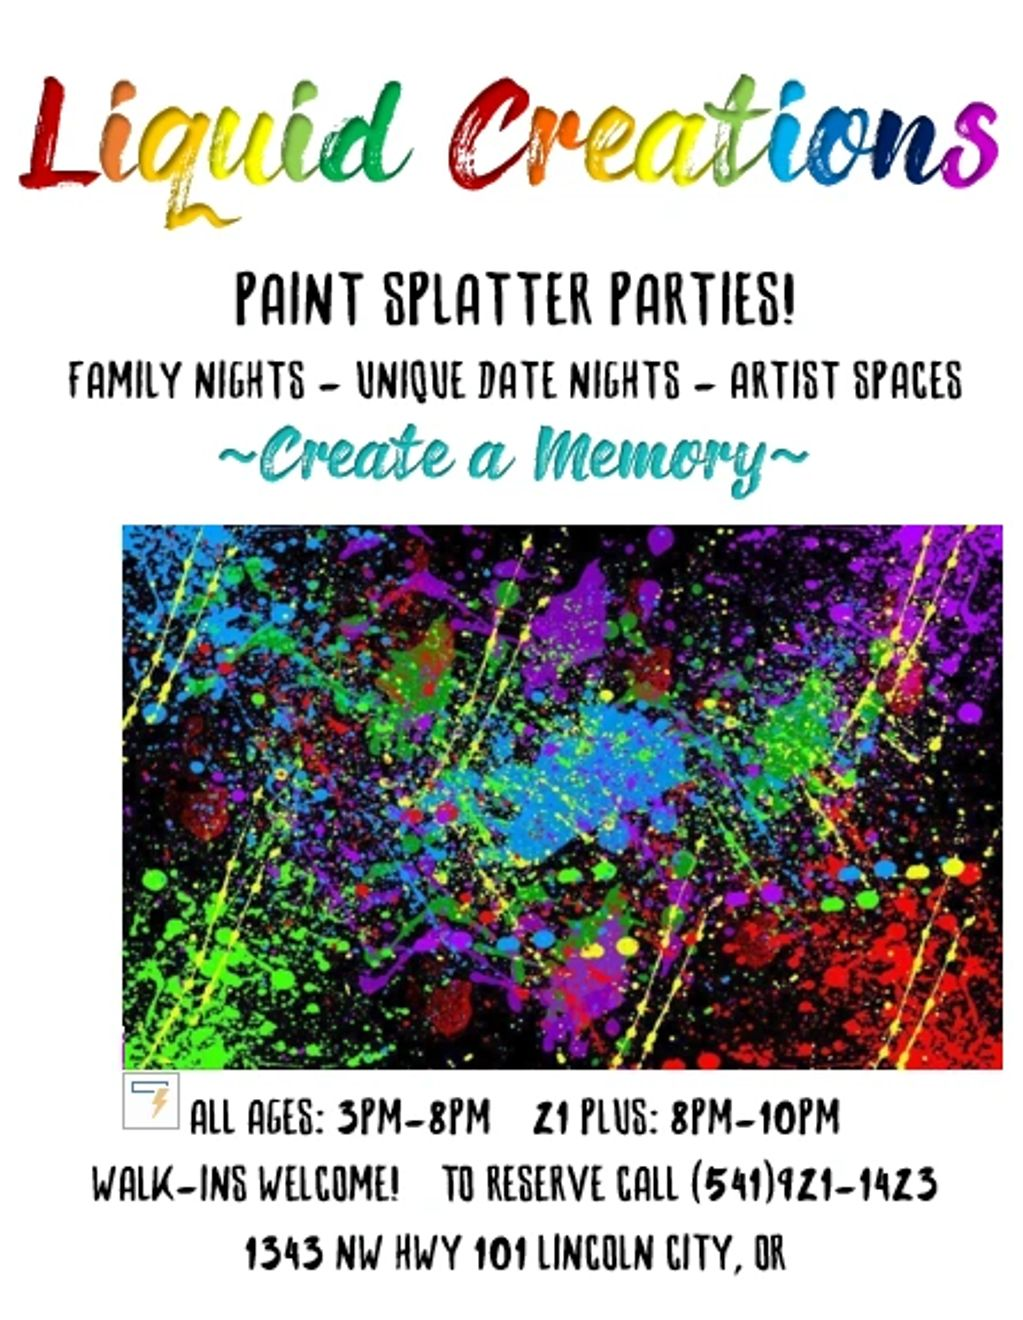 paint splatter parties, family nights, unique date nights, artist space, walk-ins welcome